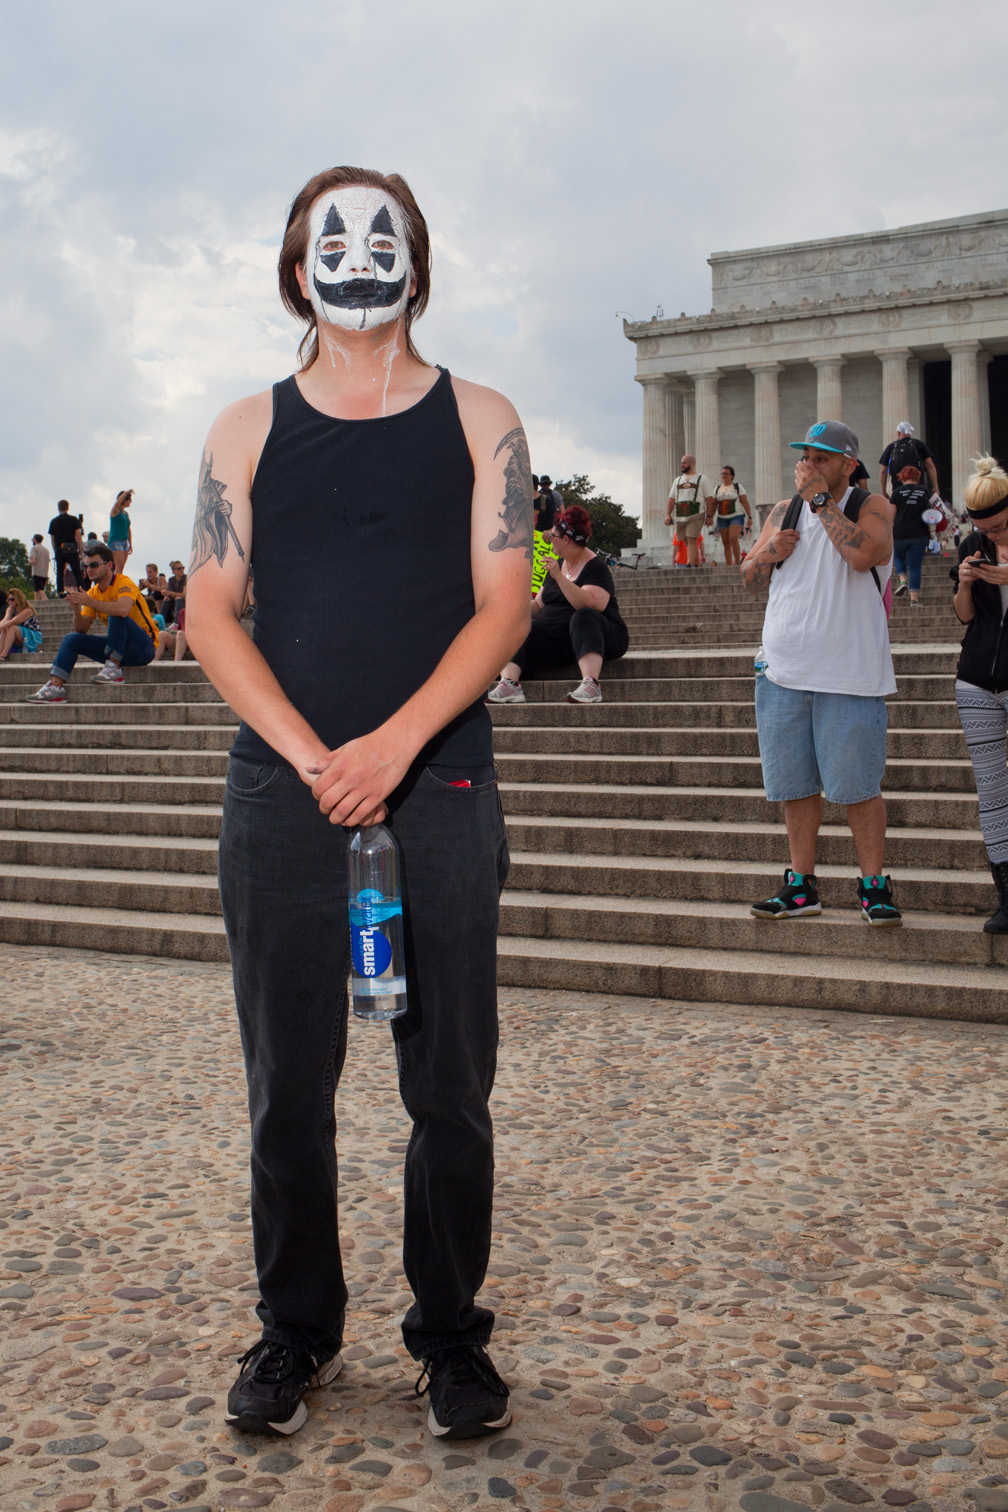 Tyler (Juggalo March, DC)